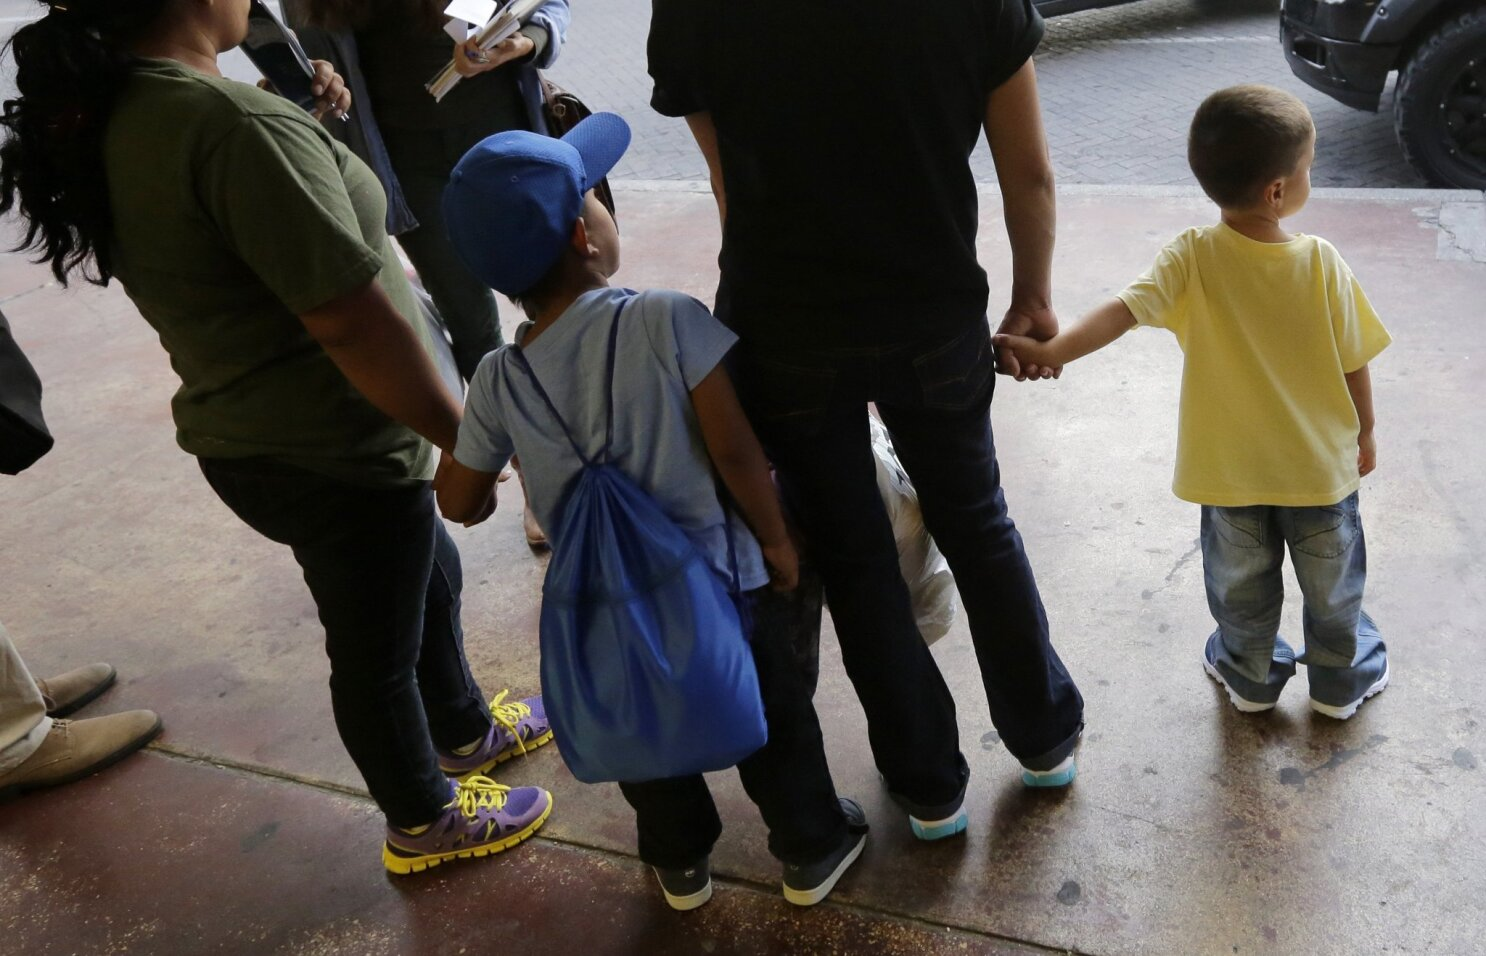 California to sue Trump administration over new migrant children detention policy, Newsom says